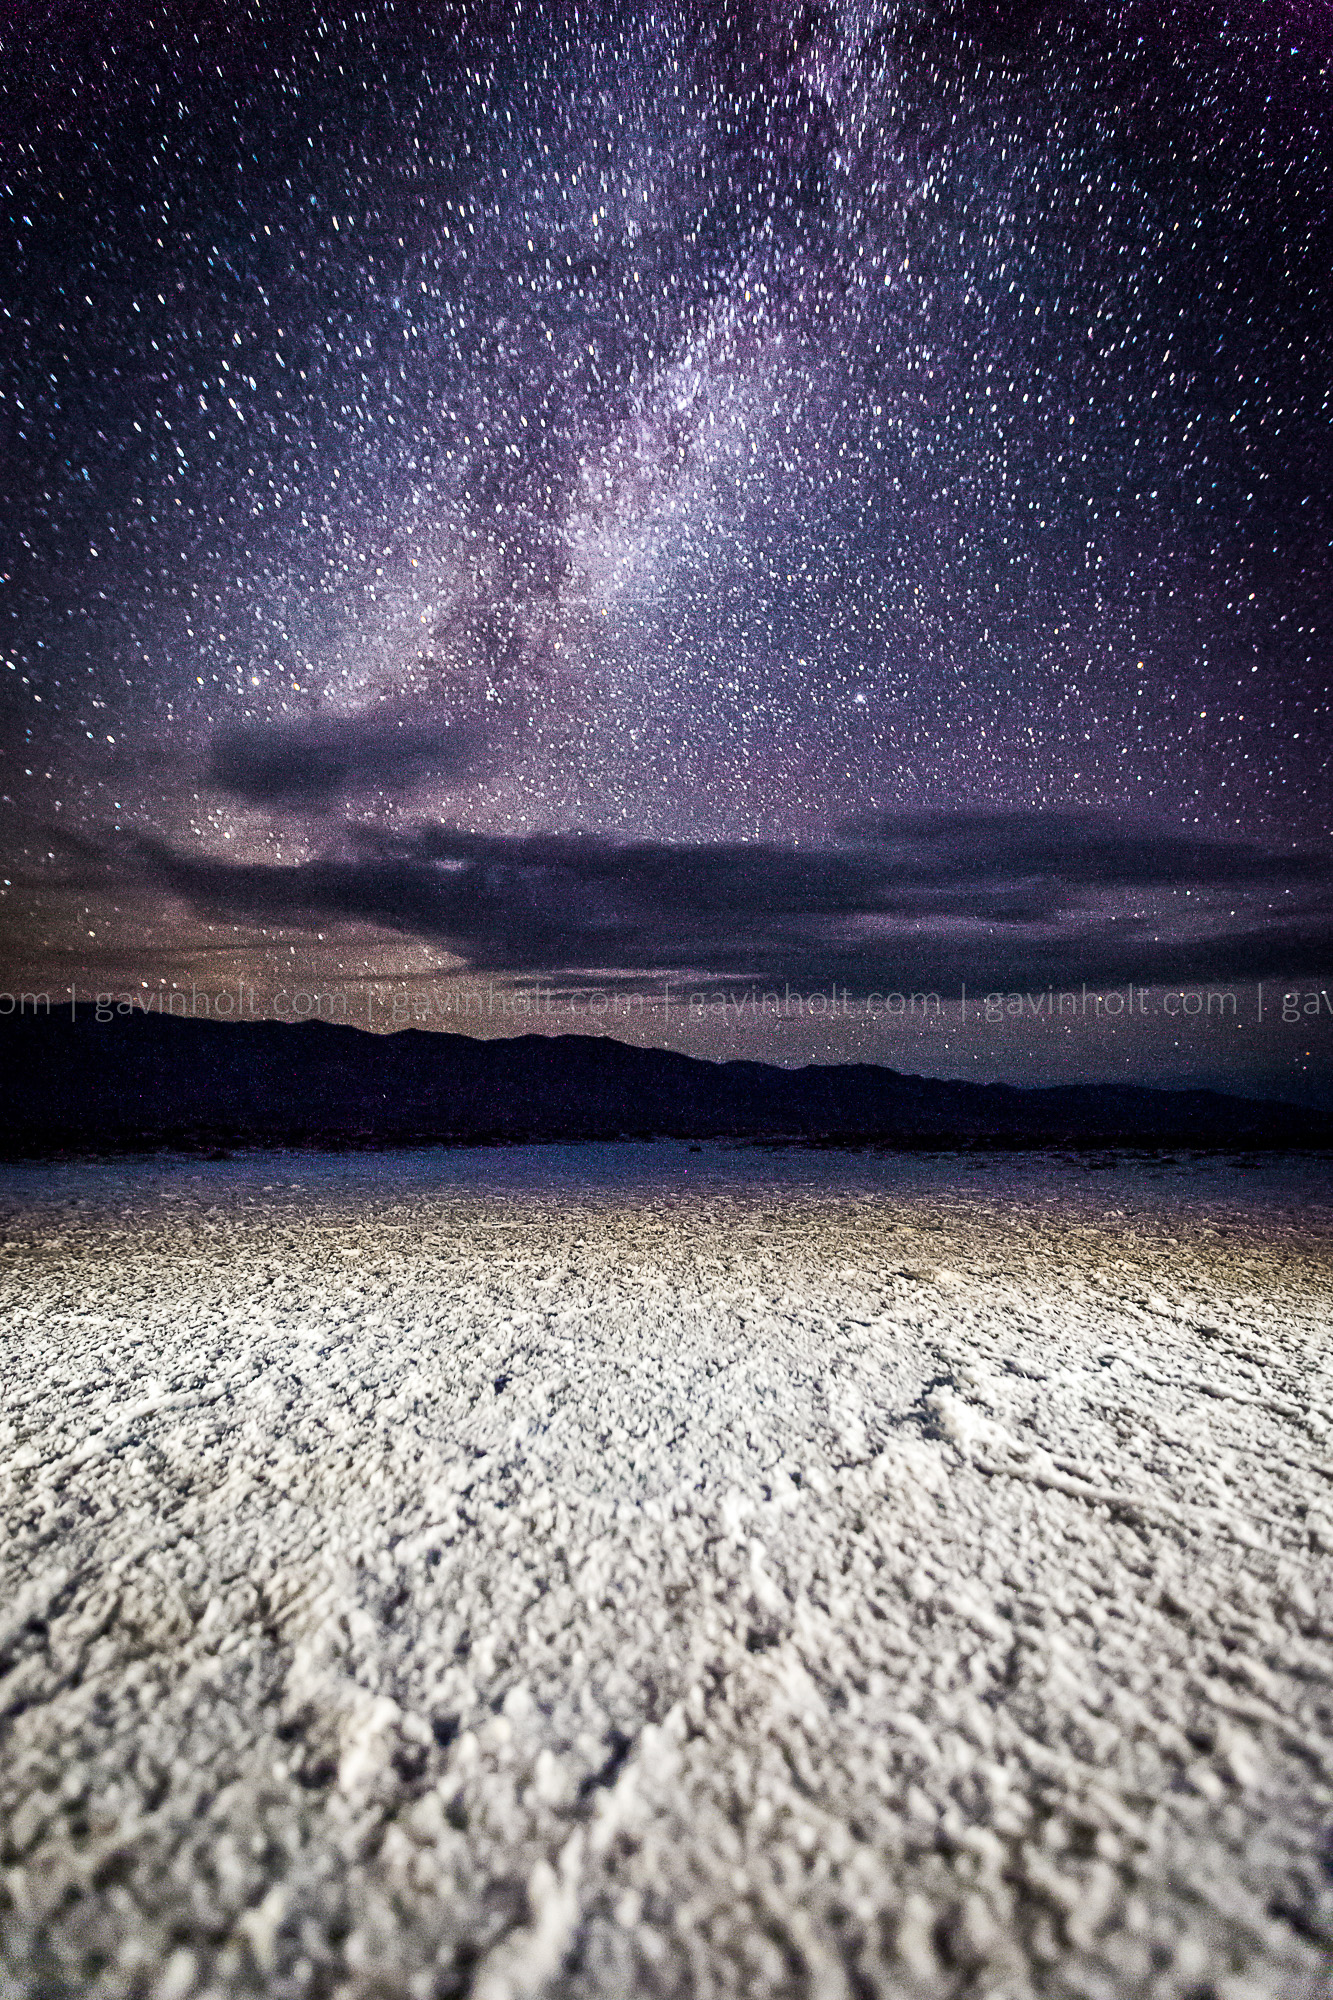 Astro-photography in Death Valley